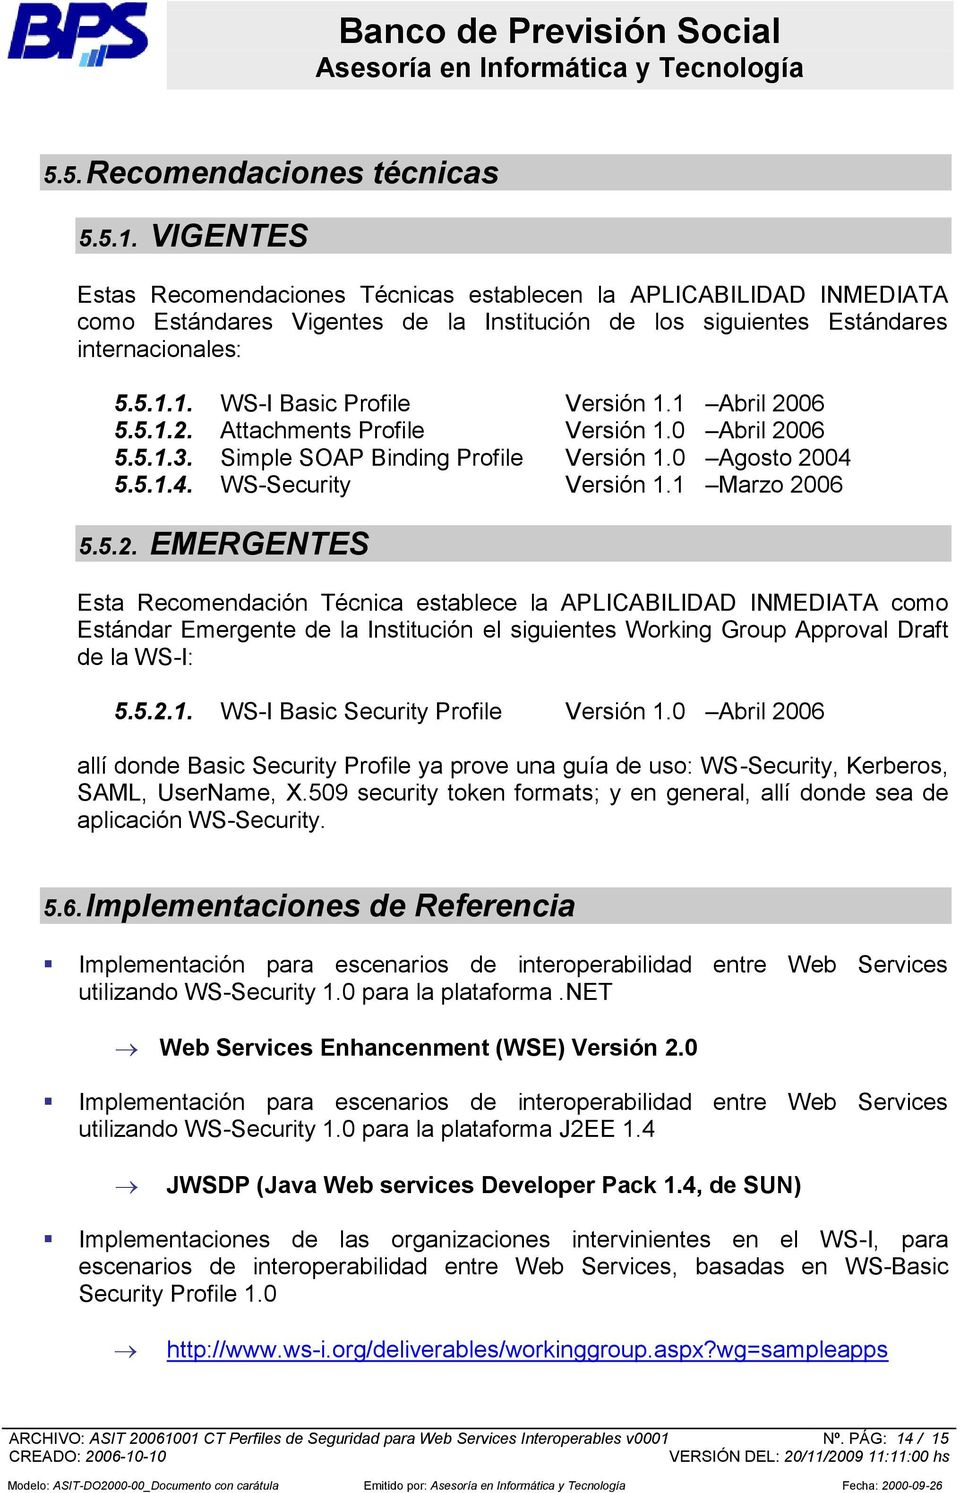 1. WS-I Basic Profile Versión 1.1 Abril 2006 5.5.1.2. Attachments Profile Versión 1.0 Abril 2006 5.5.1.3. Simple SOAP Binding Profile Versión 1.0 Agosto 2004 5.5.1.4. WS-Security Versión 1.